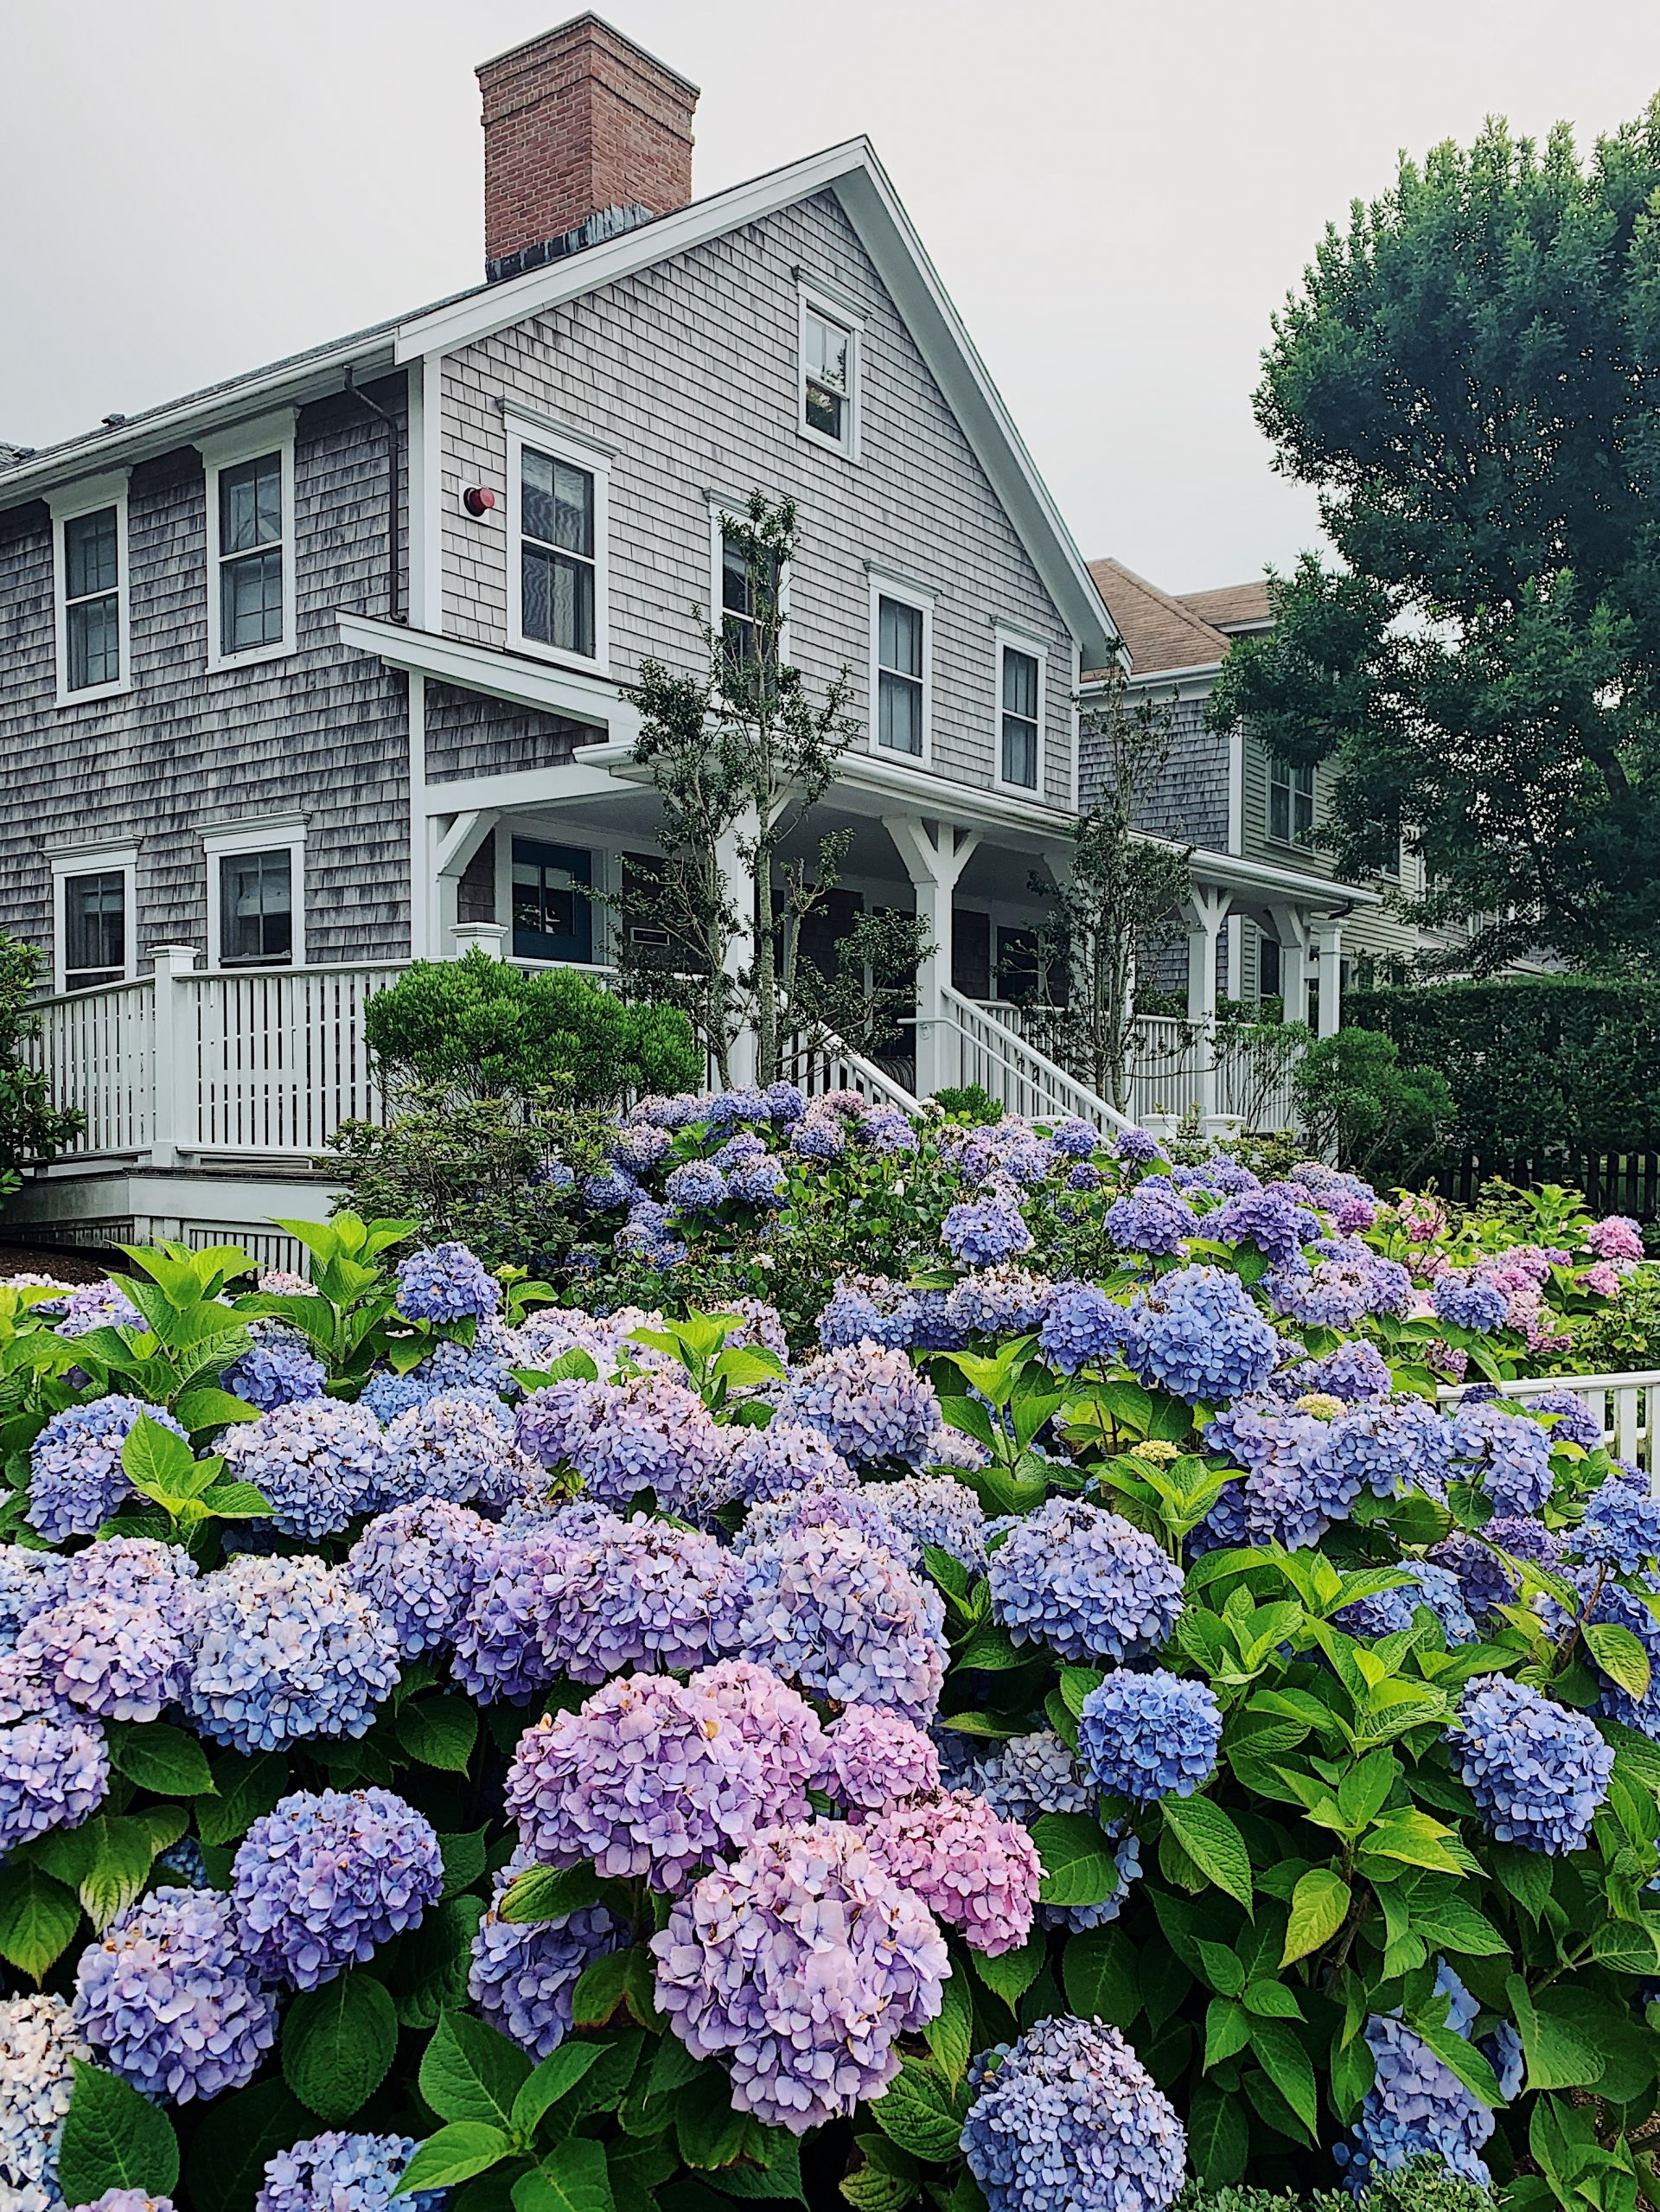 Travel blogger Meaghan Murray shares a post o Nantucket, Massachusetts on her blog The Stopover